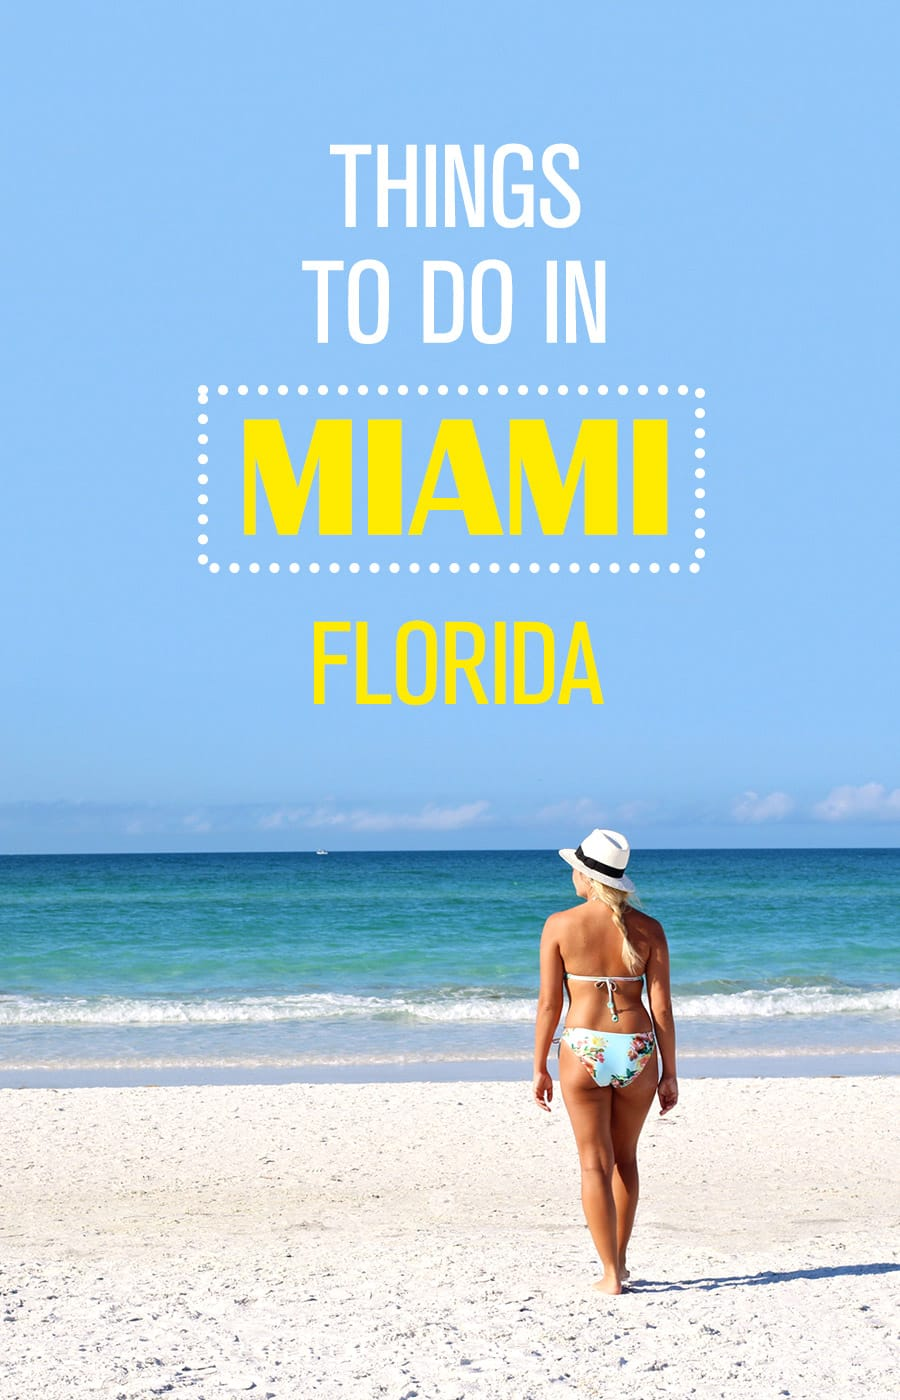 Best Things to Do in Miami, Florida